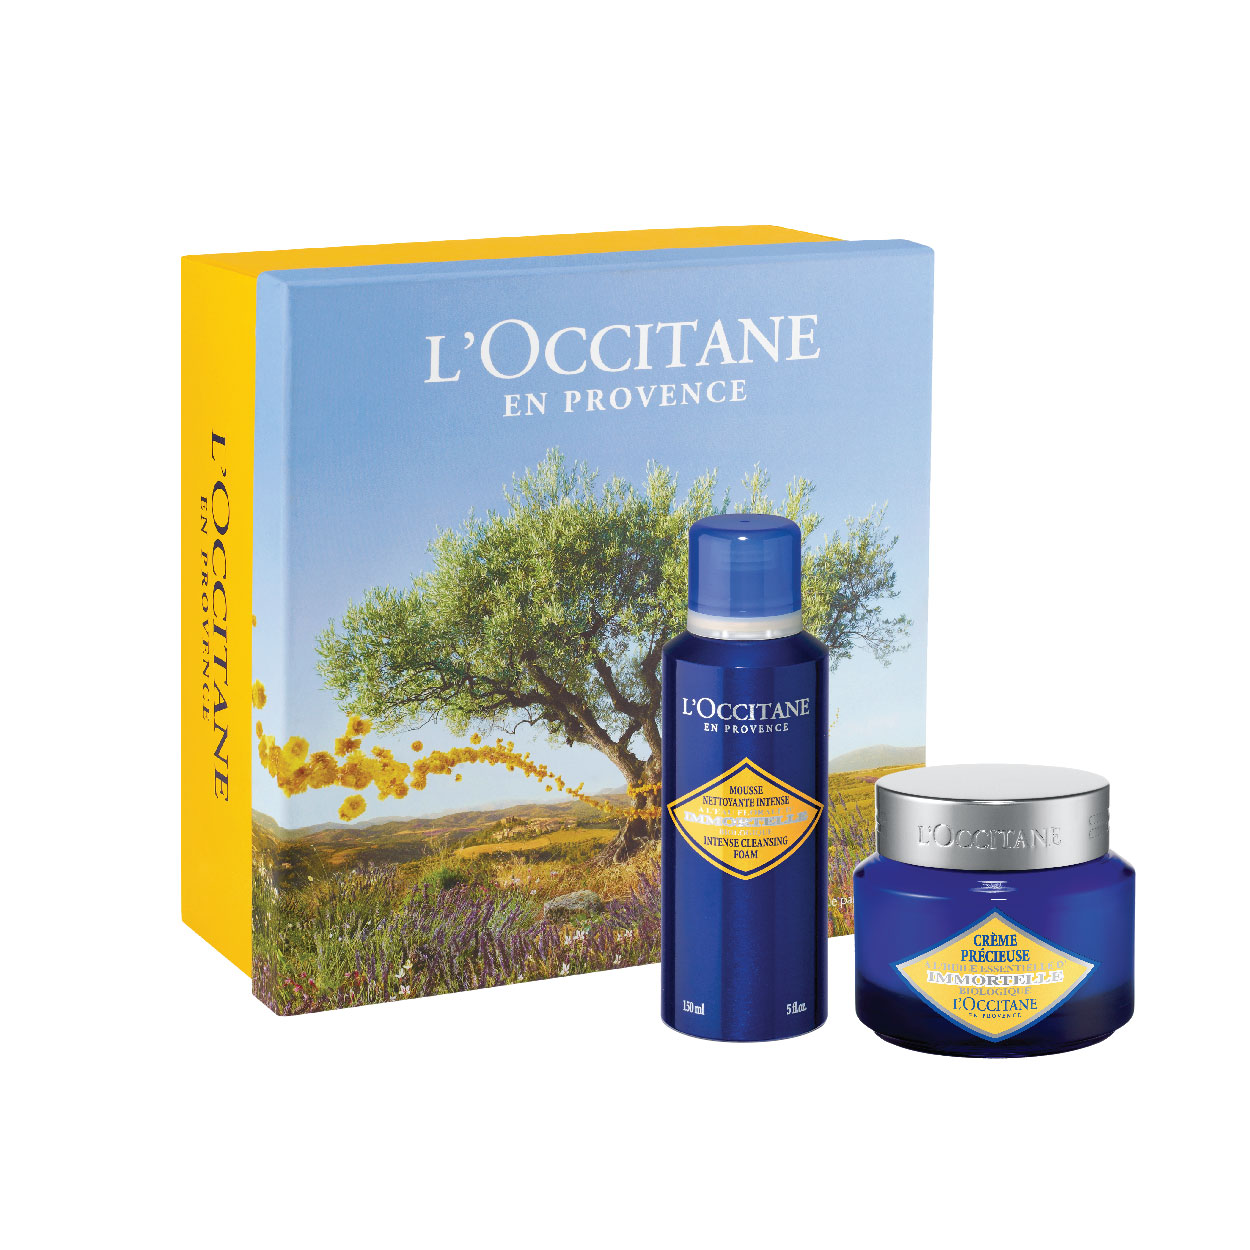 Immortelle Precious Cleanse & Nourishing Set